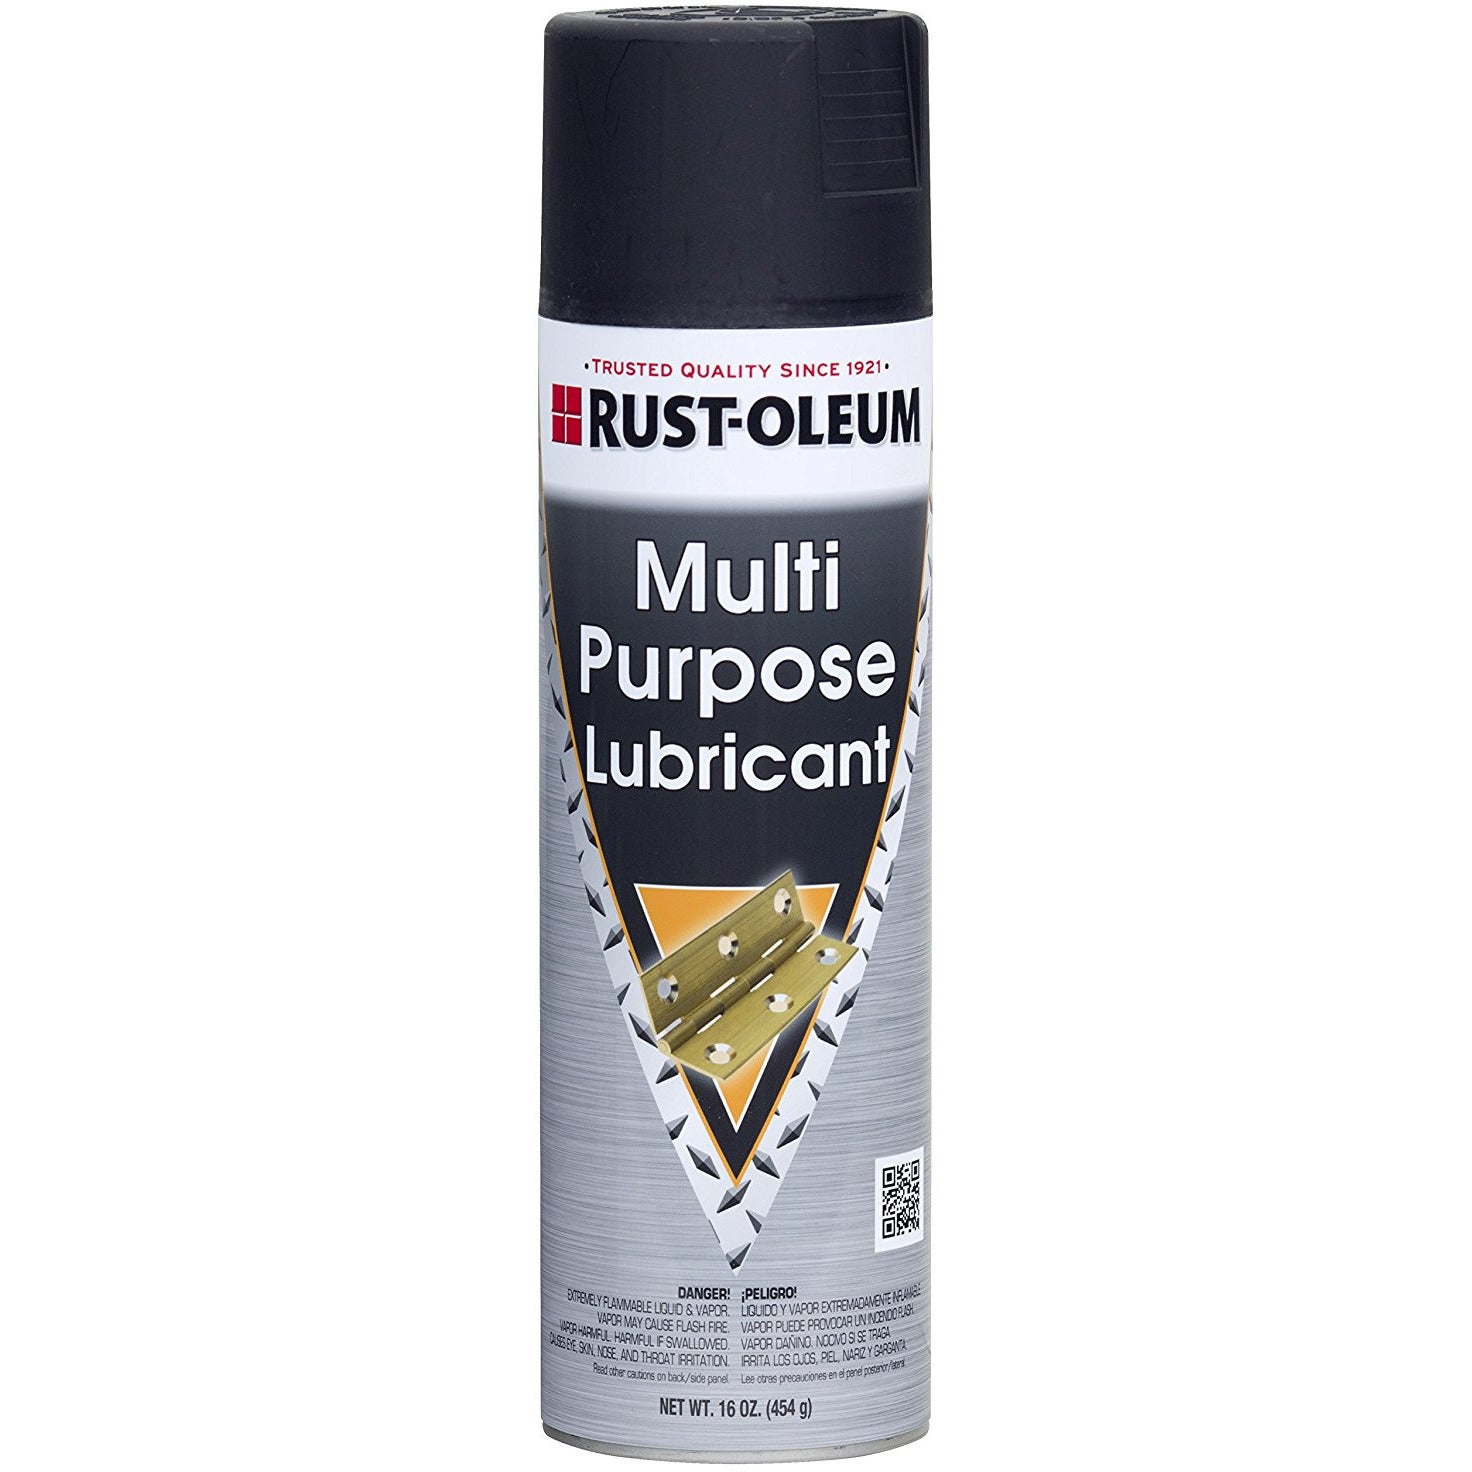 Rustoleum Multi-Purpose Lubricant